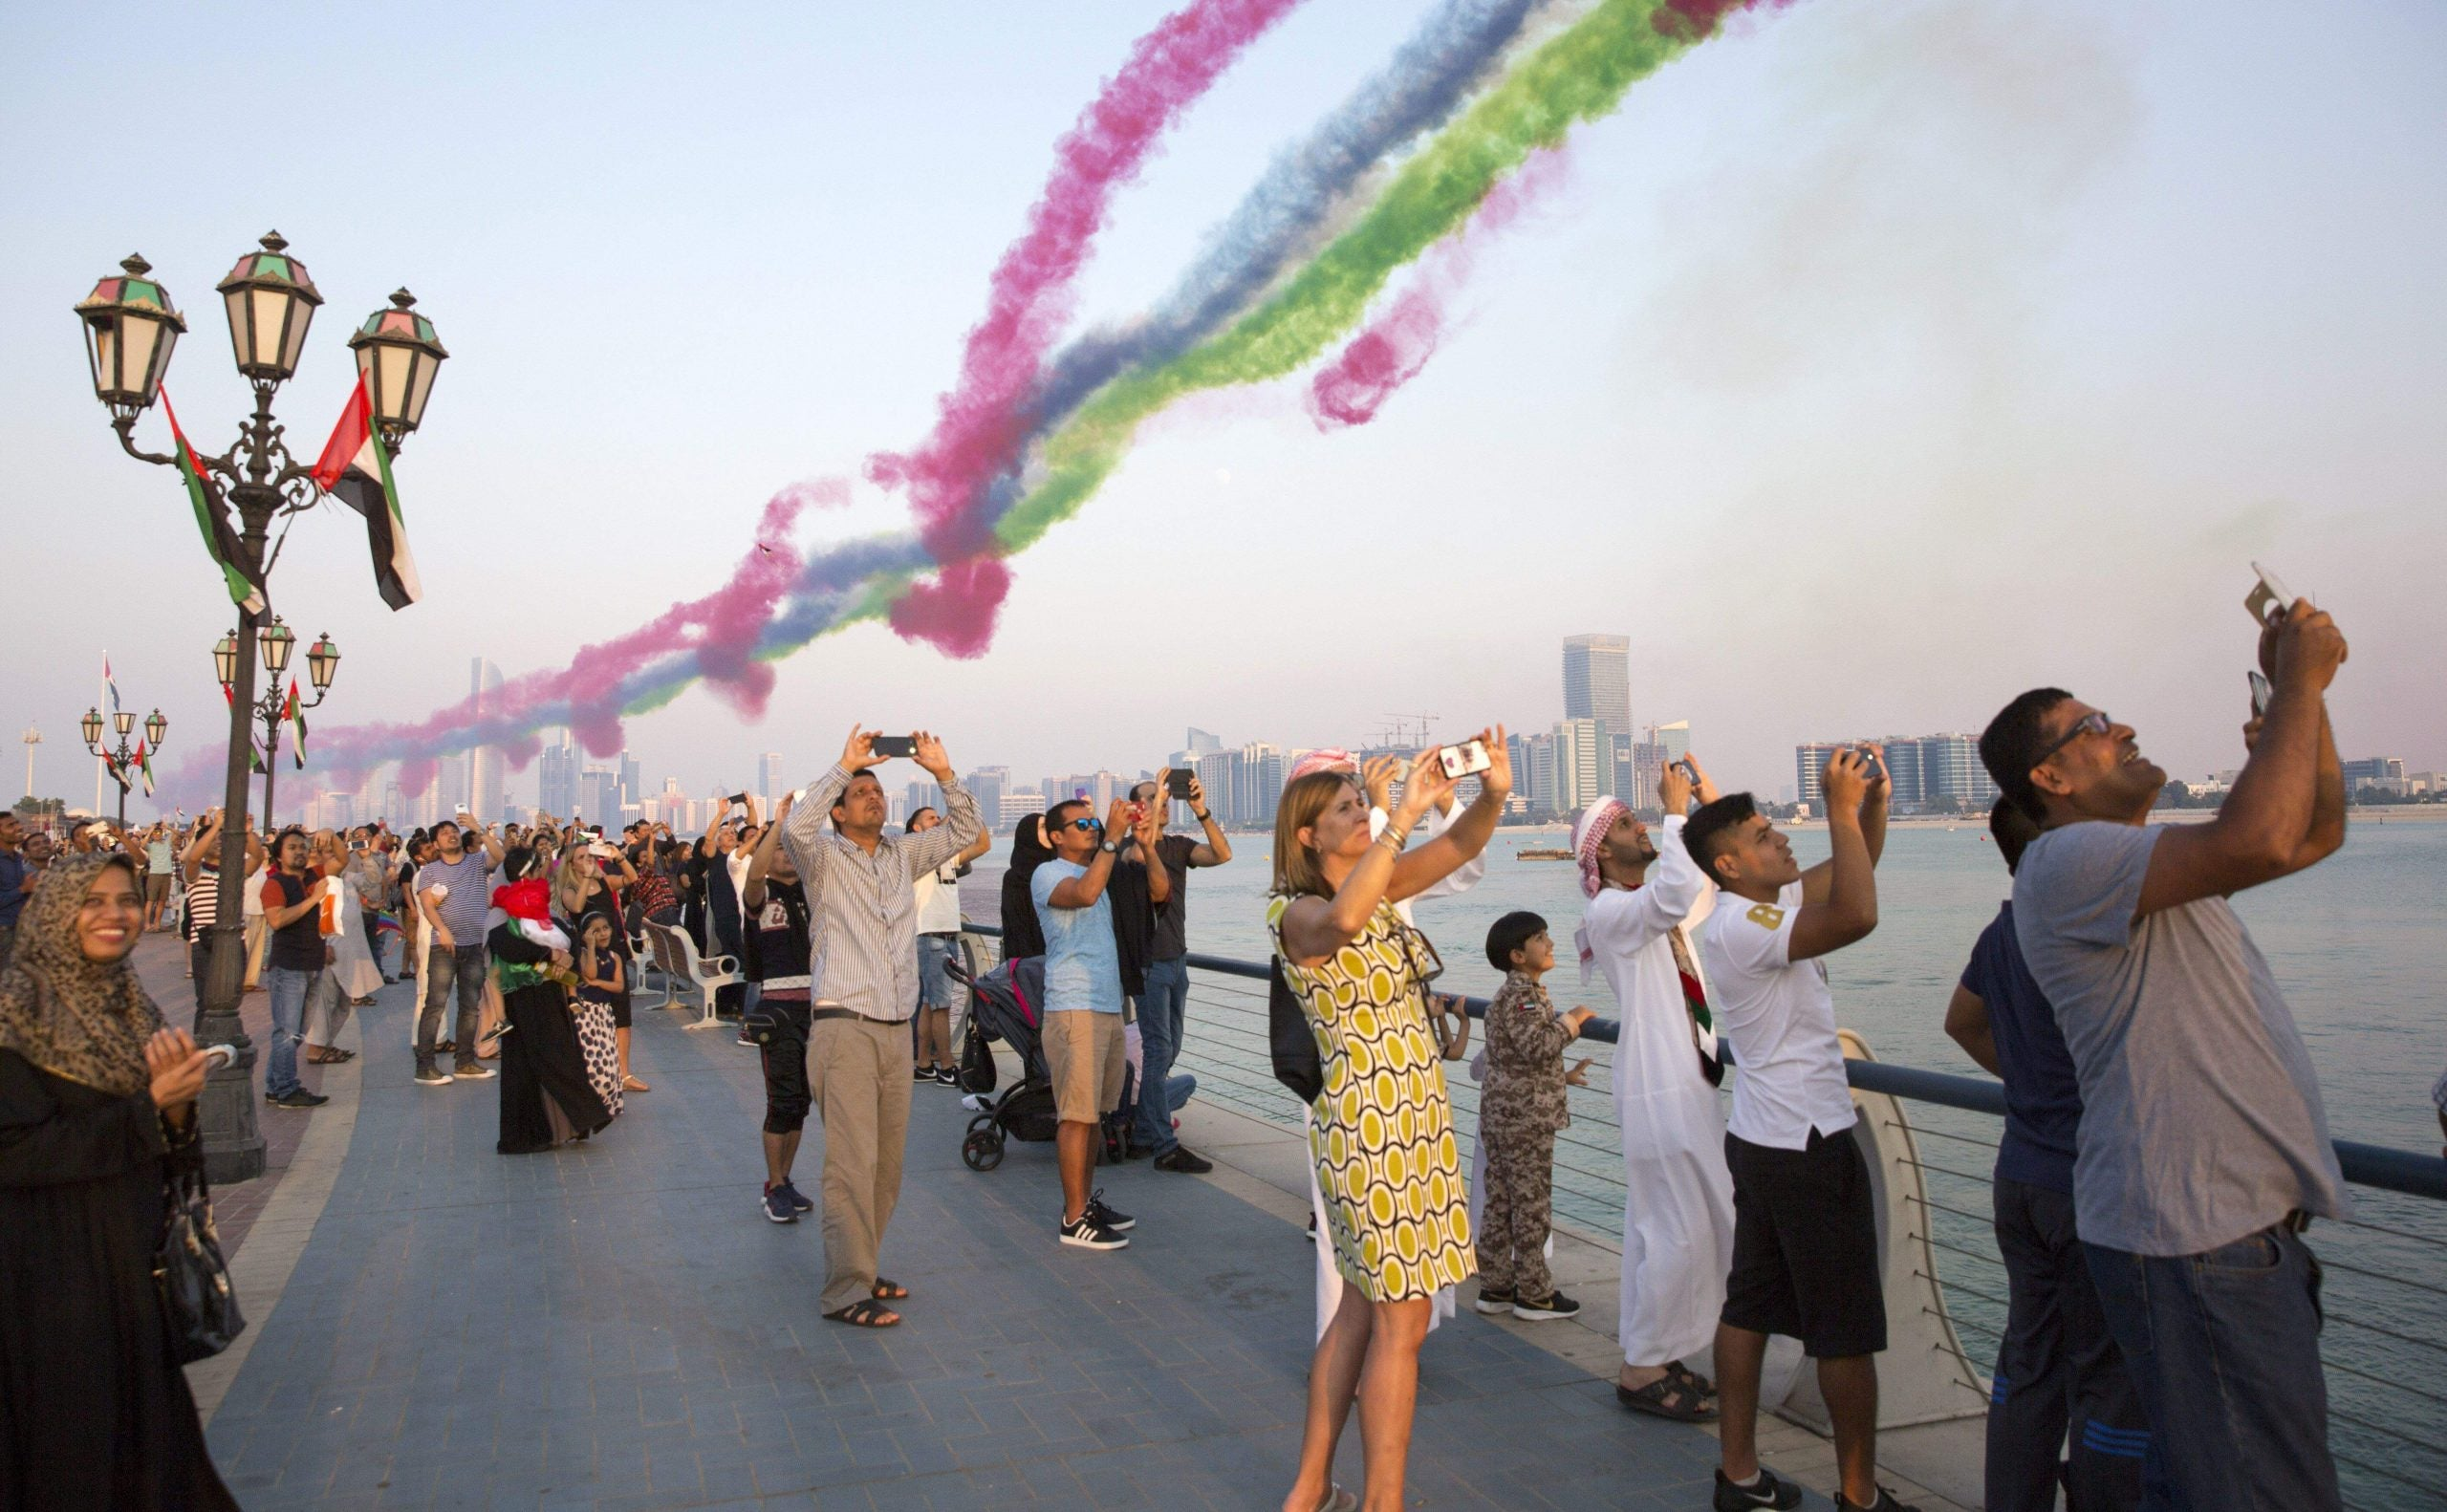 As one of Abu Dhabi's unofficial citizens, when will I get to call my country home?